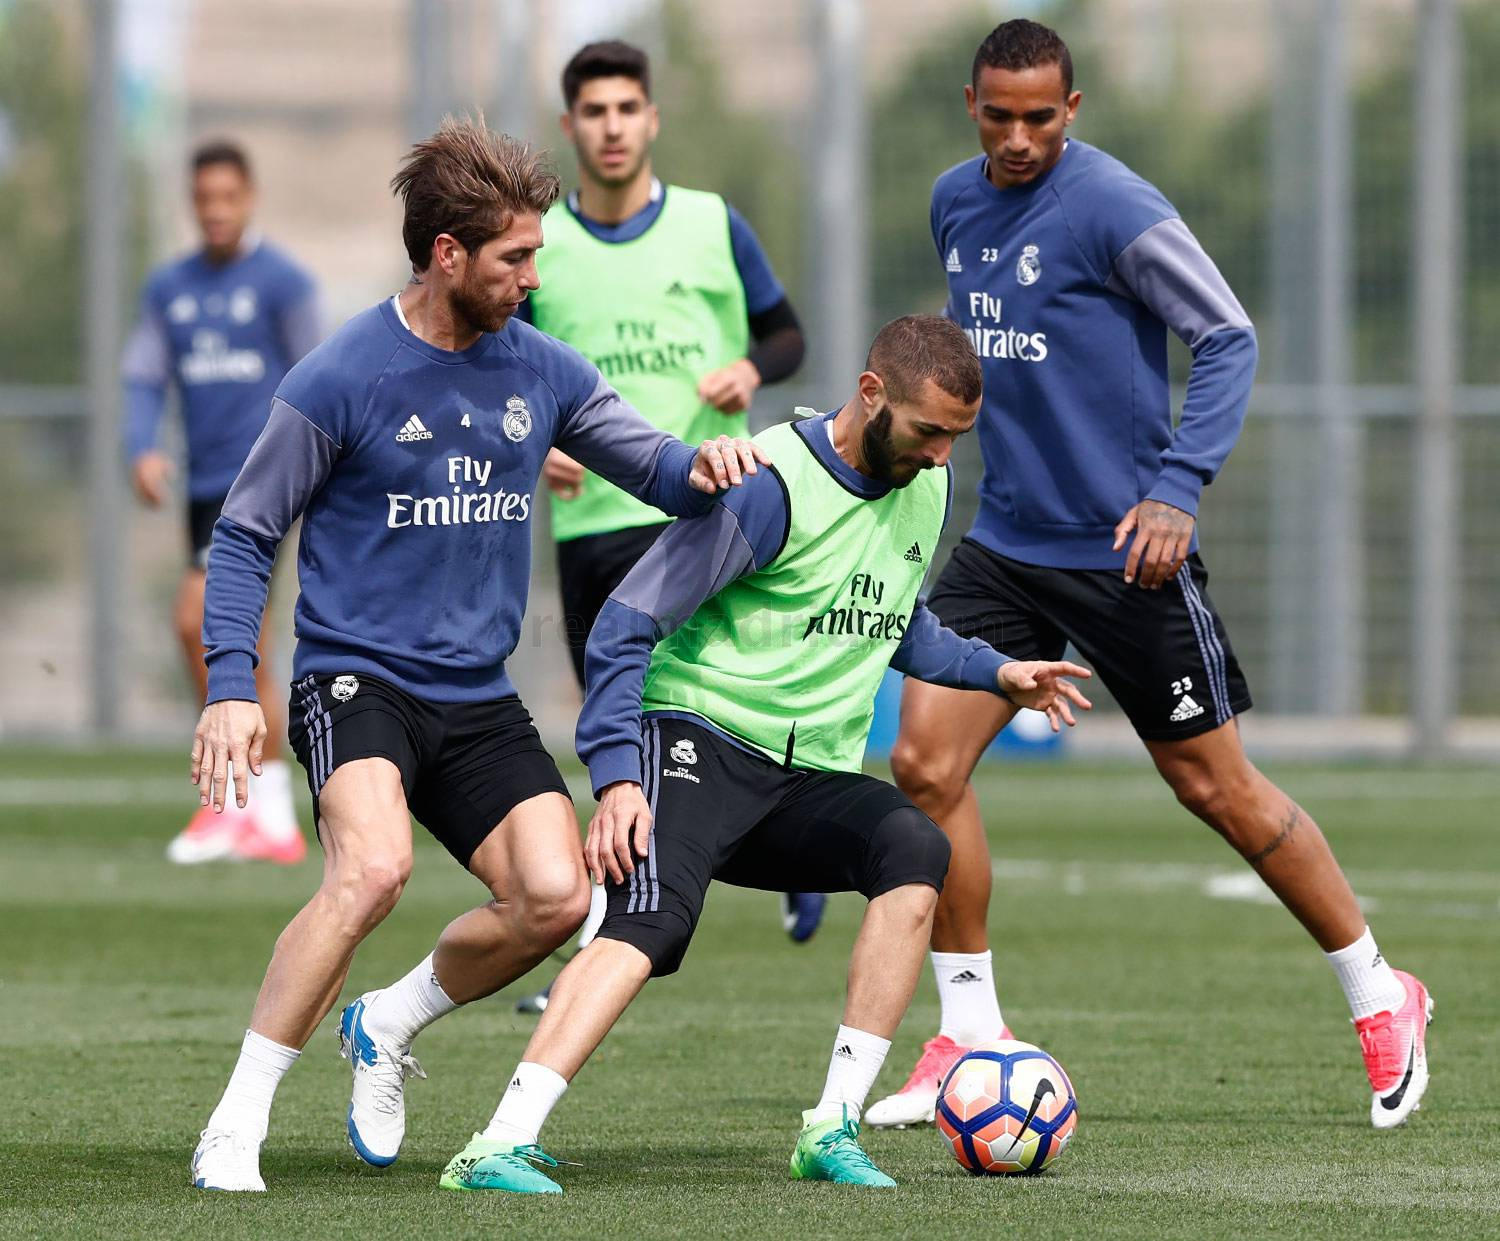 Real Madrid - Entrenamiento del Real Madrid - 05-05-2017